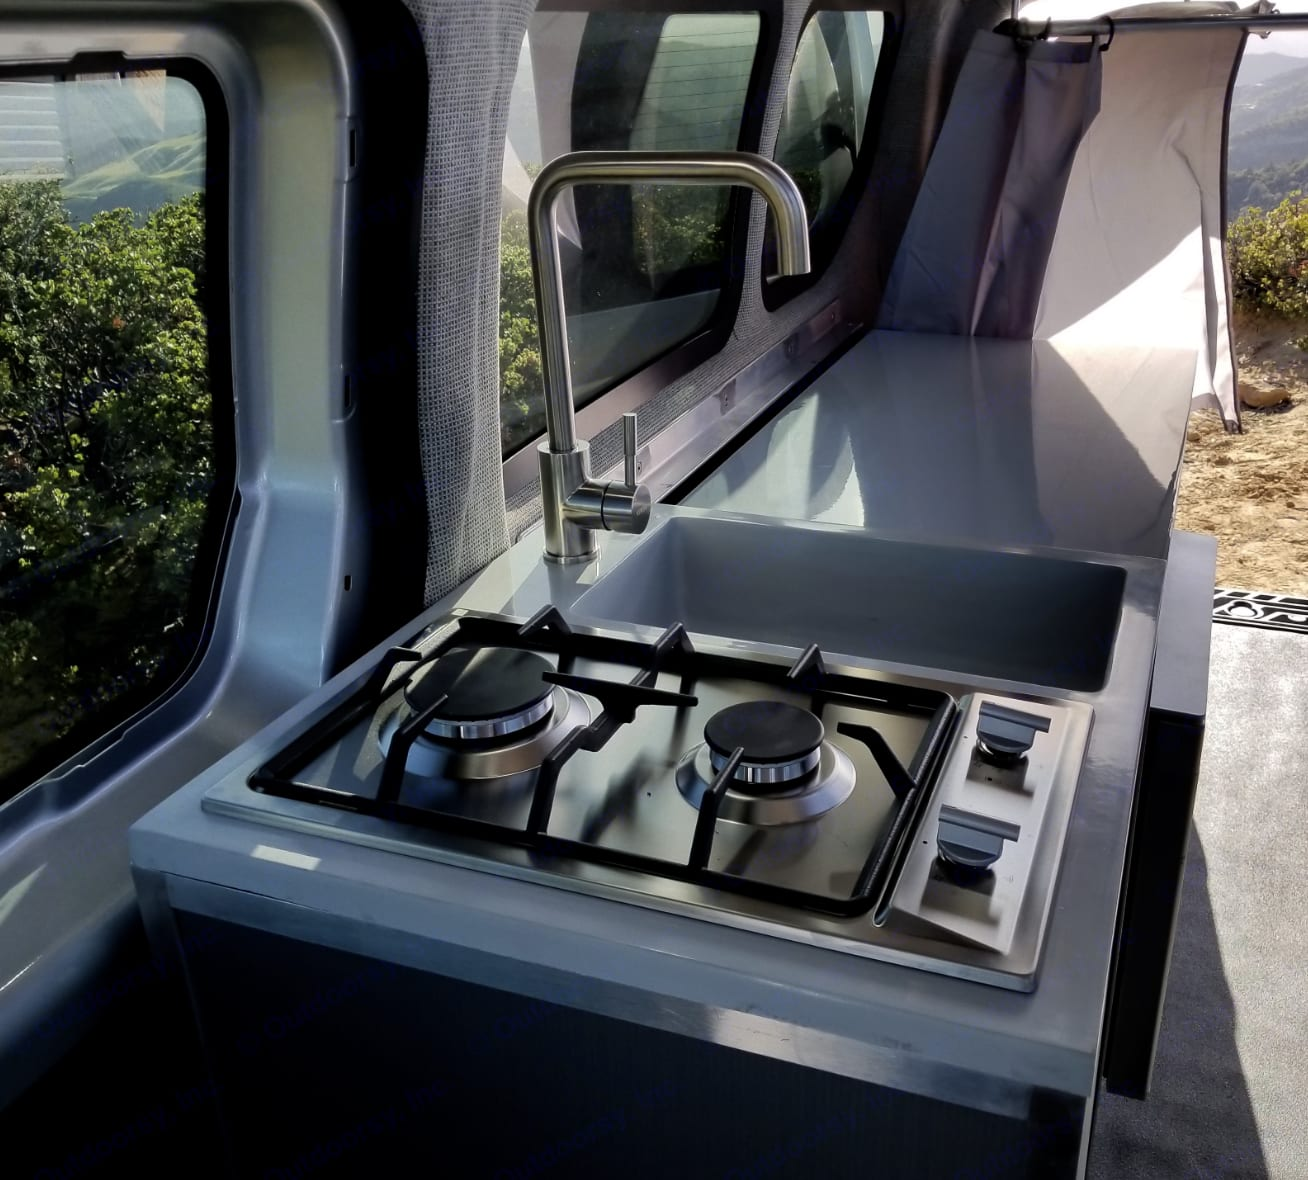 Storage under sink, underside fridge, plenty of counter space, water/25 gal. Fridge is right below with ample storage for food and more.. Ford ModVans Custom Transit 2020